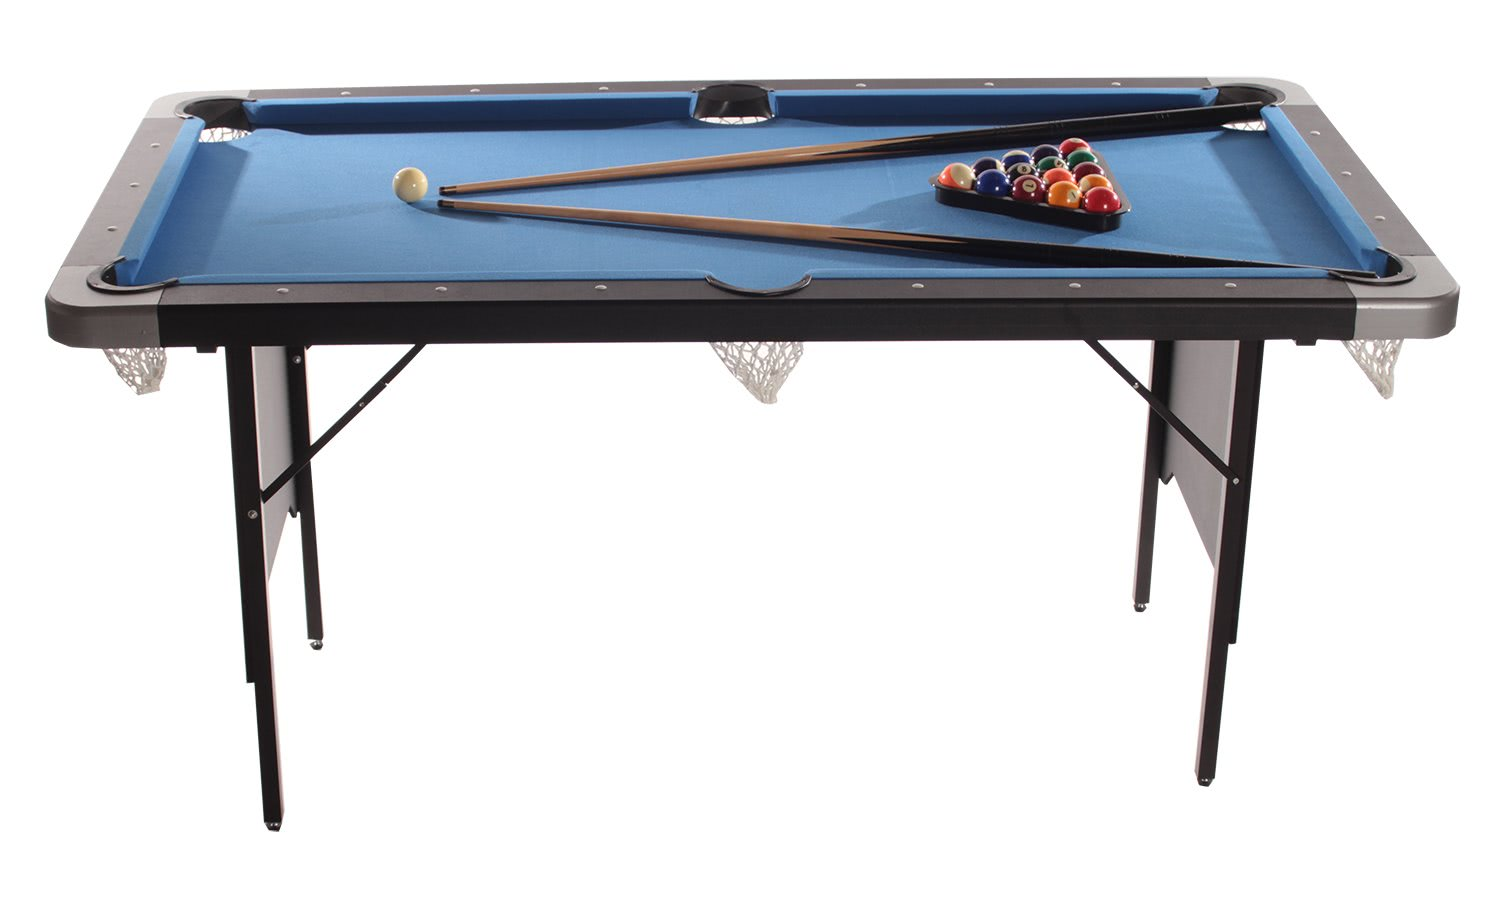 billiard mizerak space ft dick is sporting pool saver s p dynasty noimagefound table goods